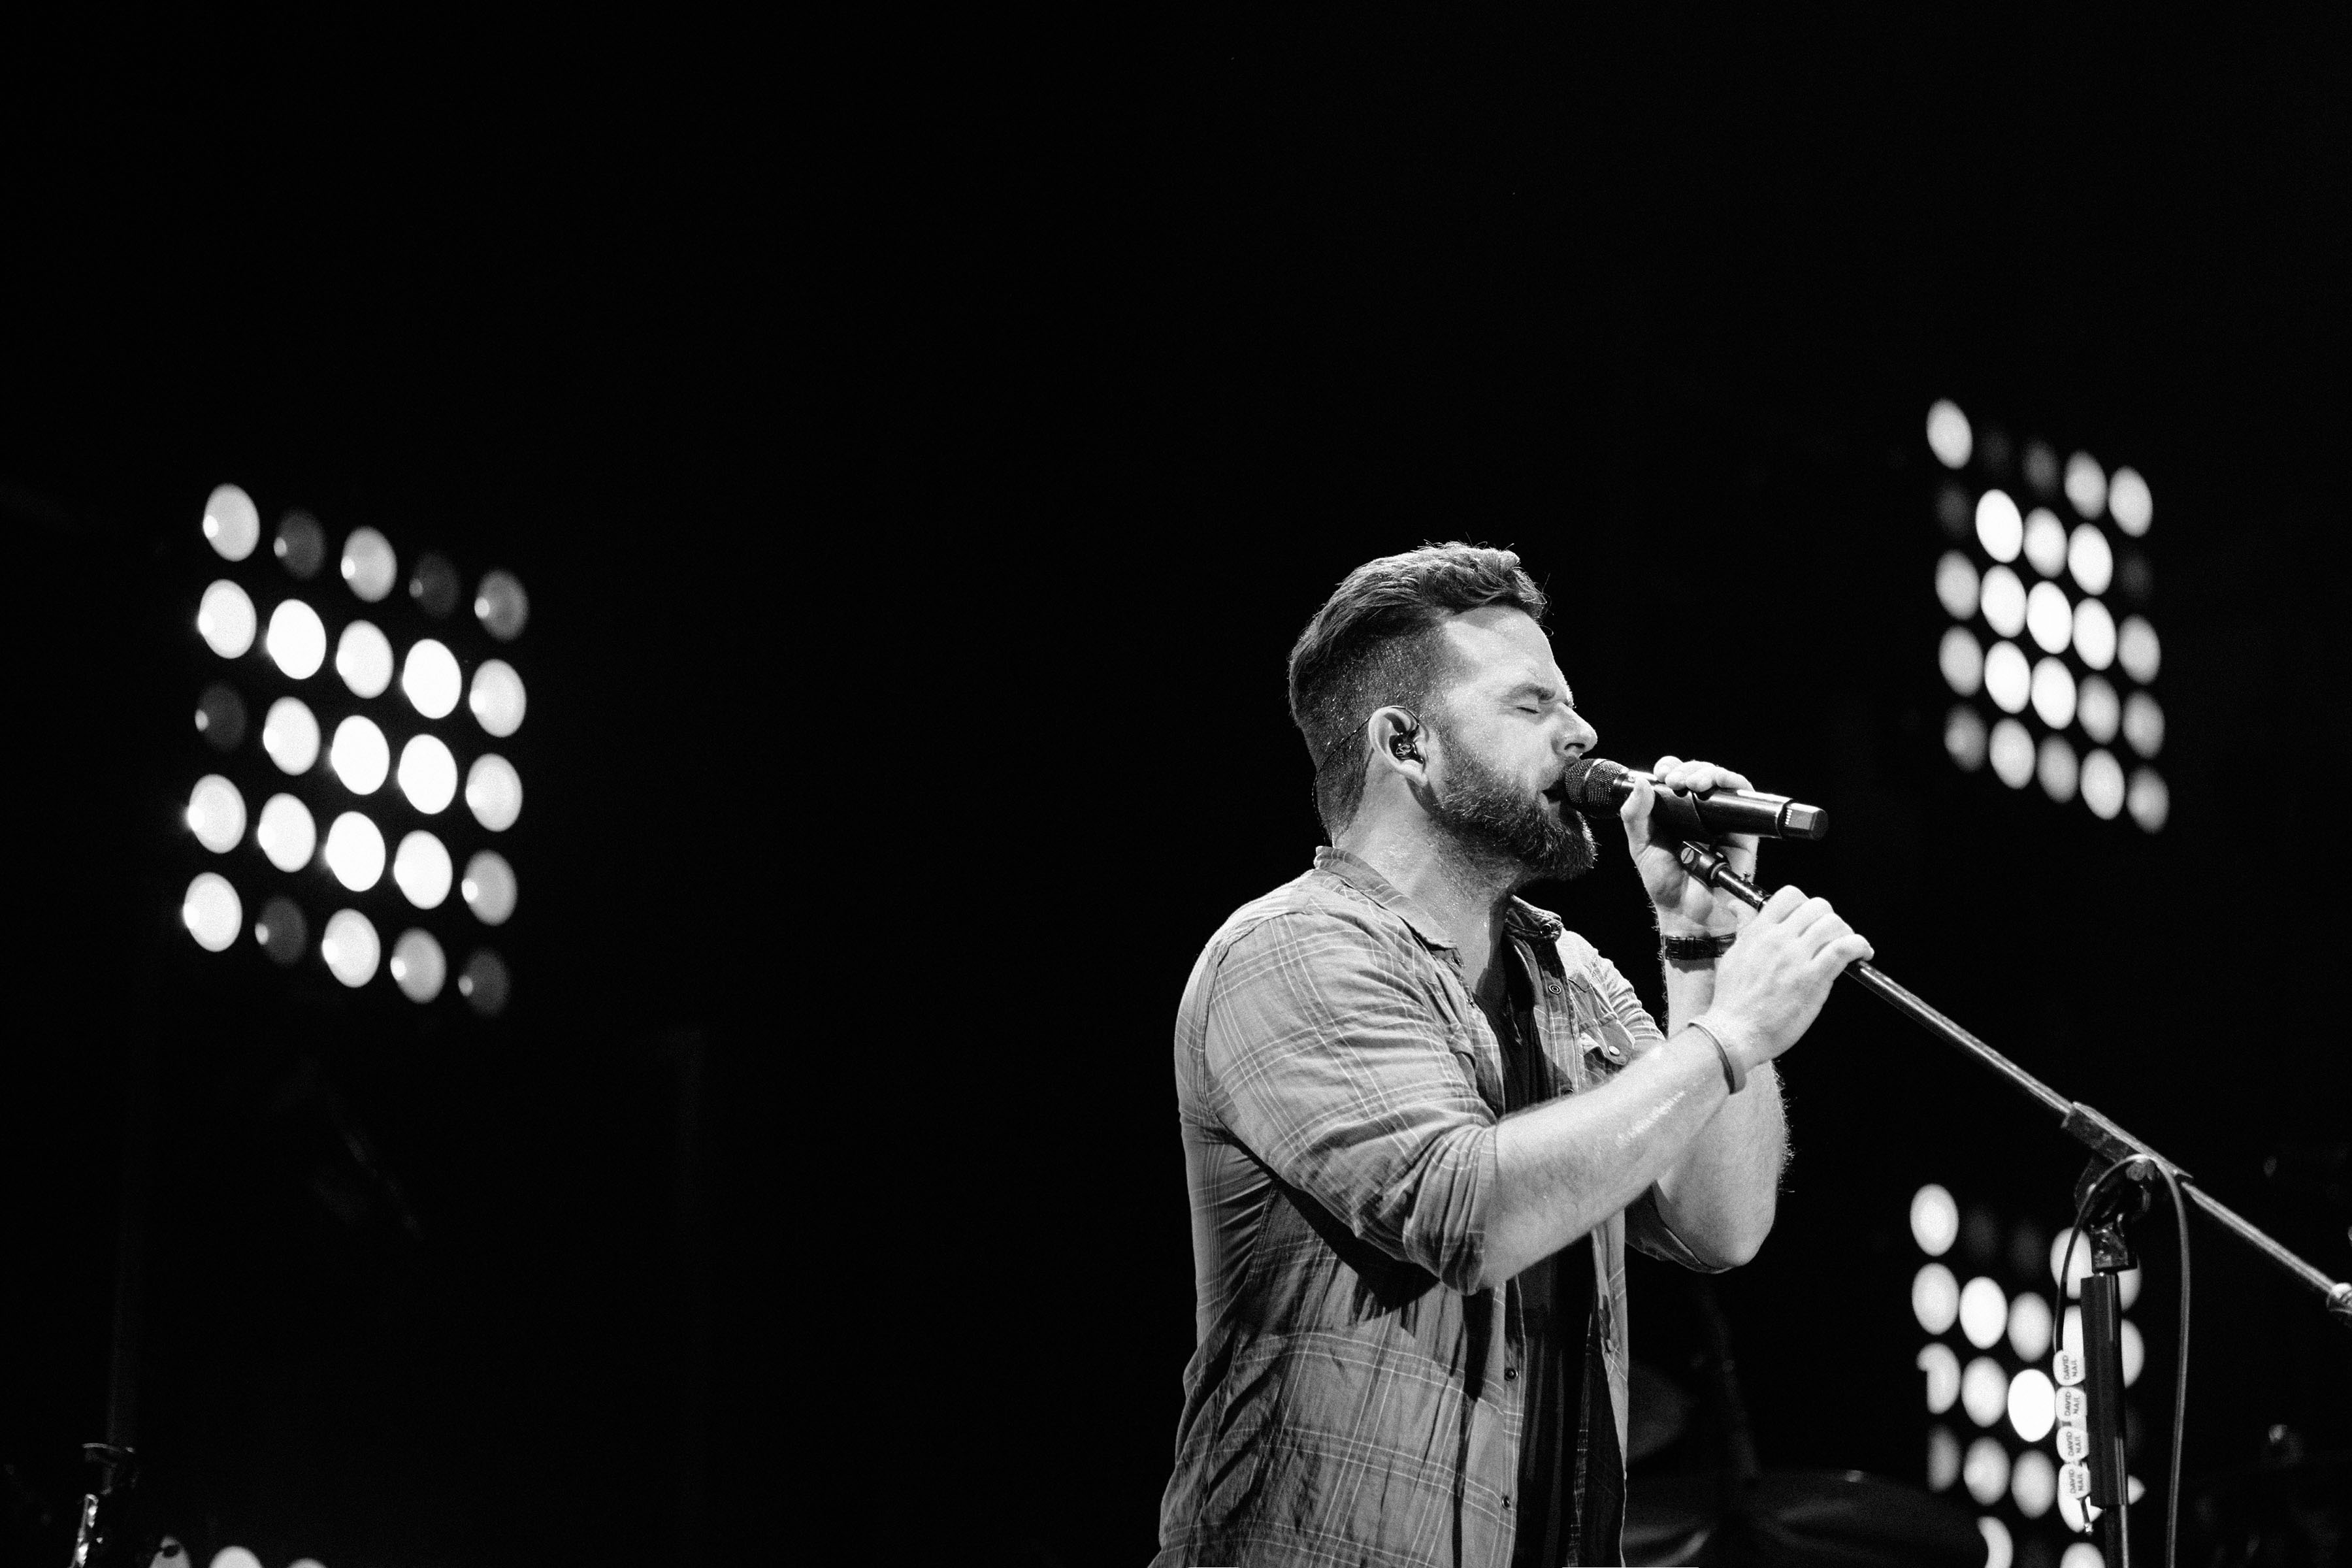 David Nail Has Recorded His Own Version Of Adeles Send My Love To Your New Lover